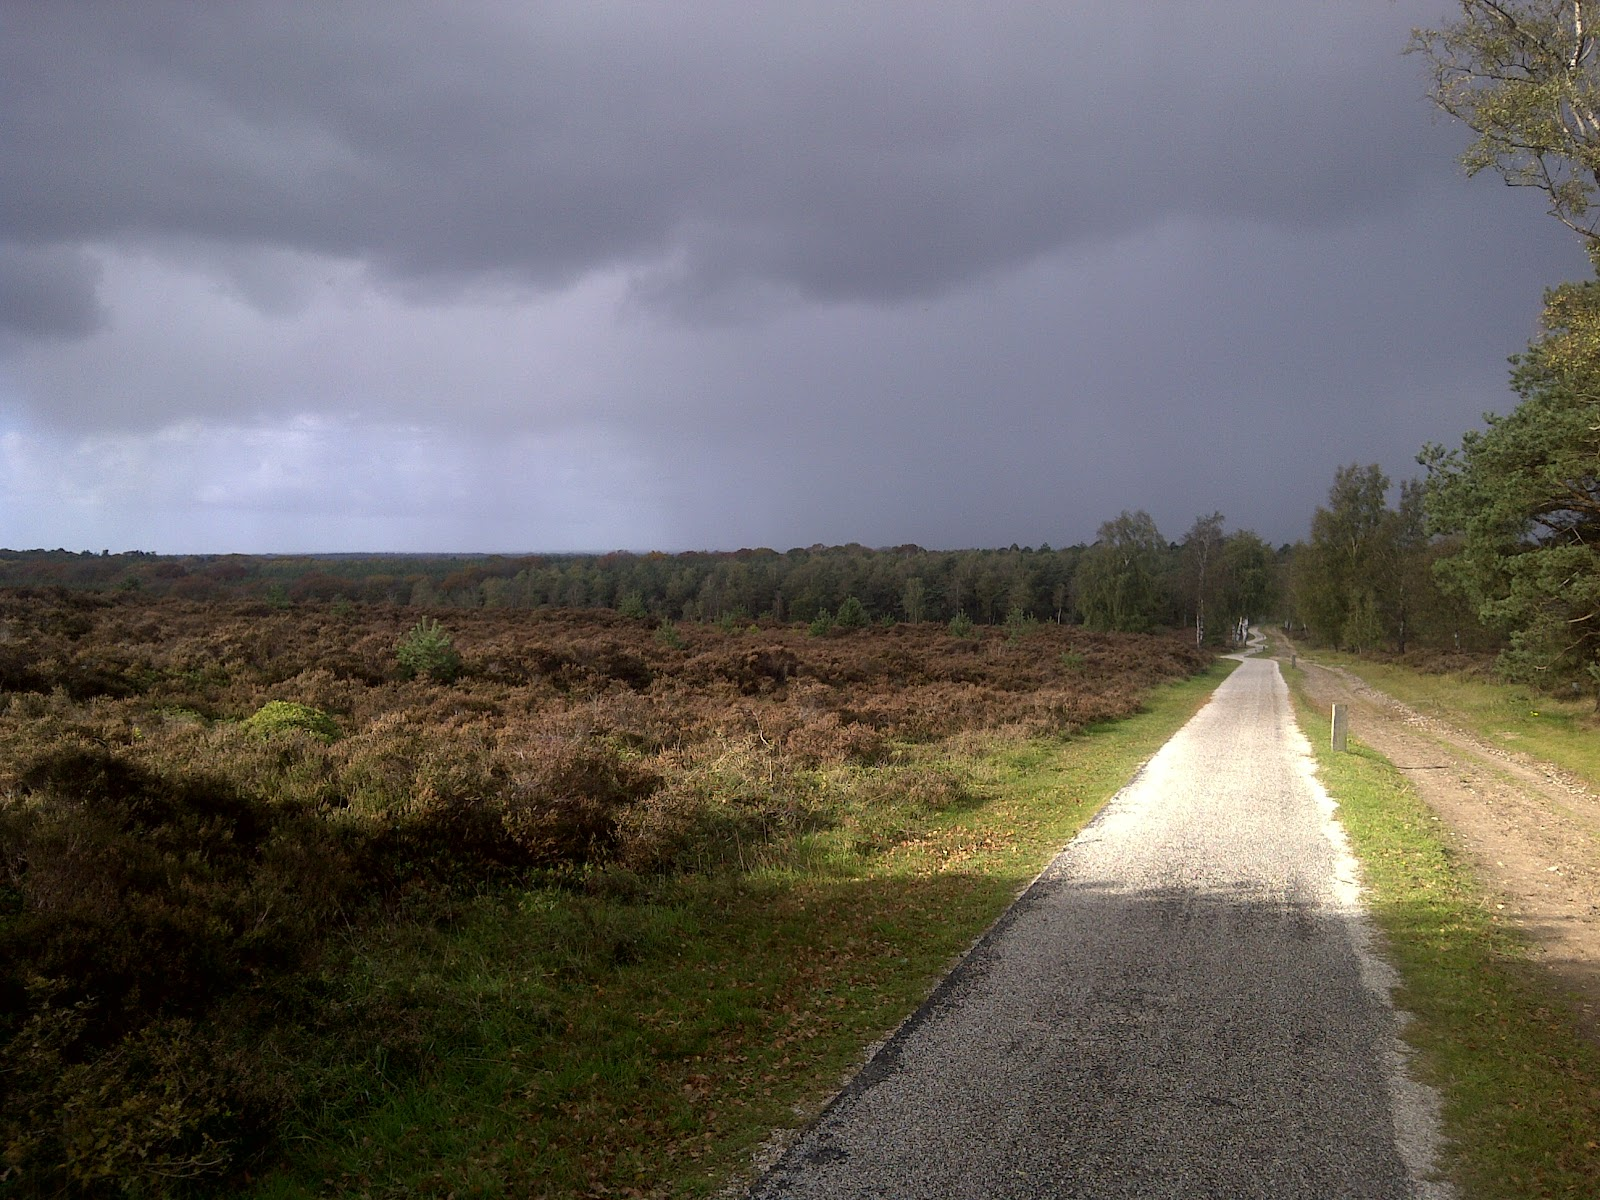 Hail, rain and shine, today the Holterberg was mine. 16km run.